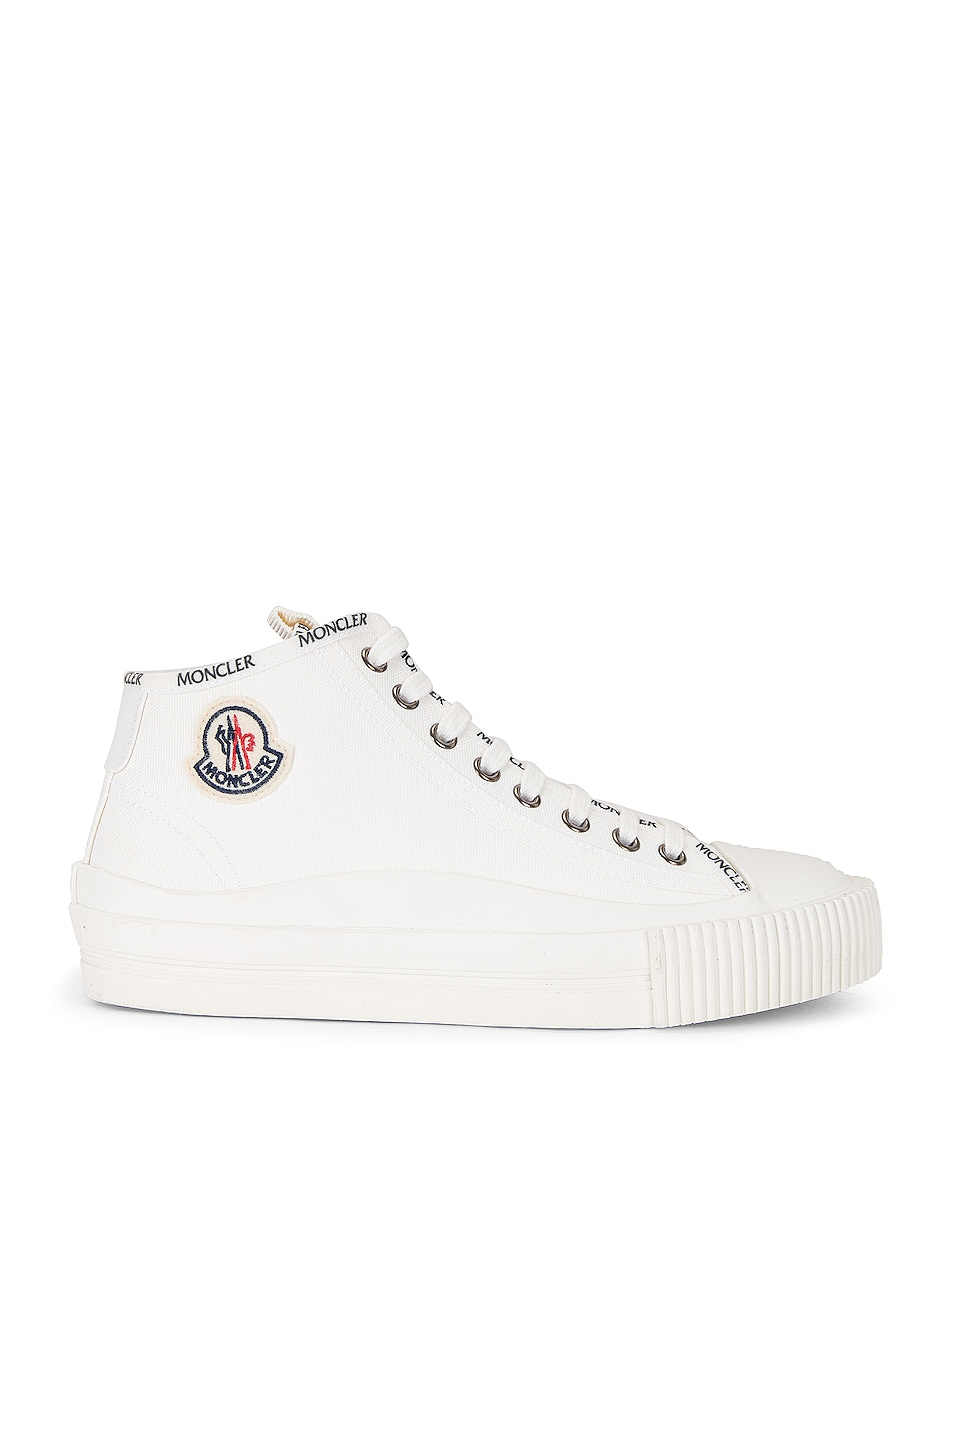 Image 1 of Moncler Lissex Sneaker in White